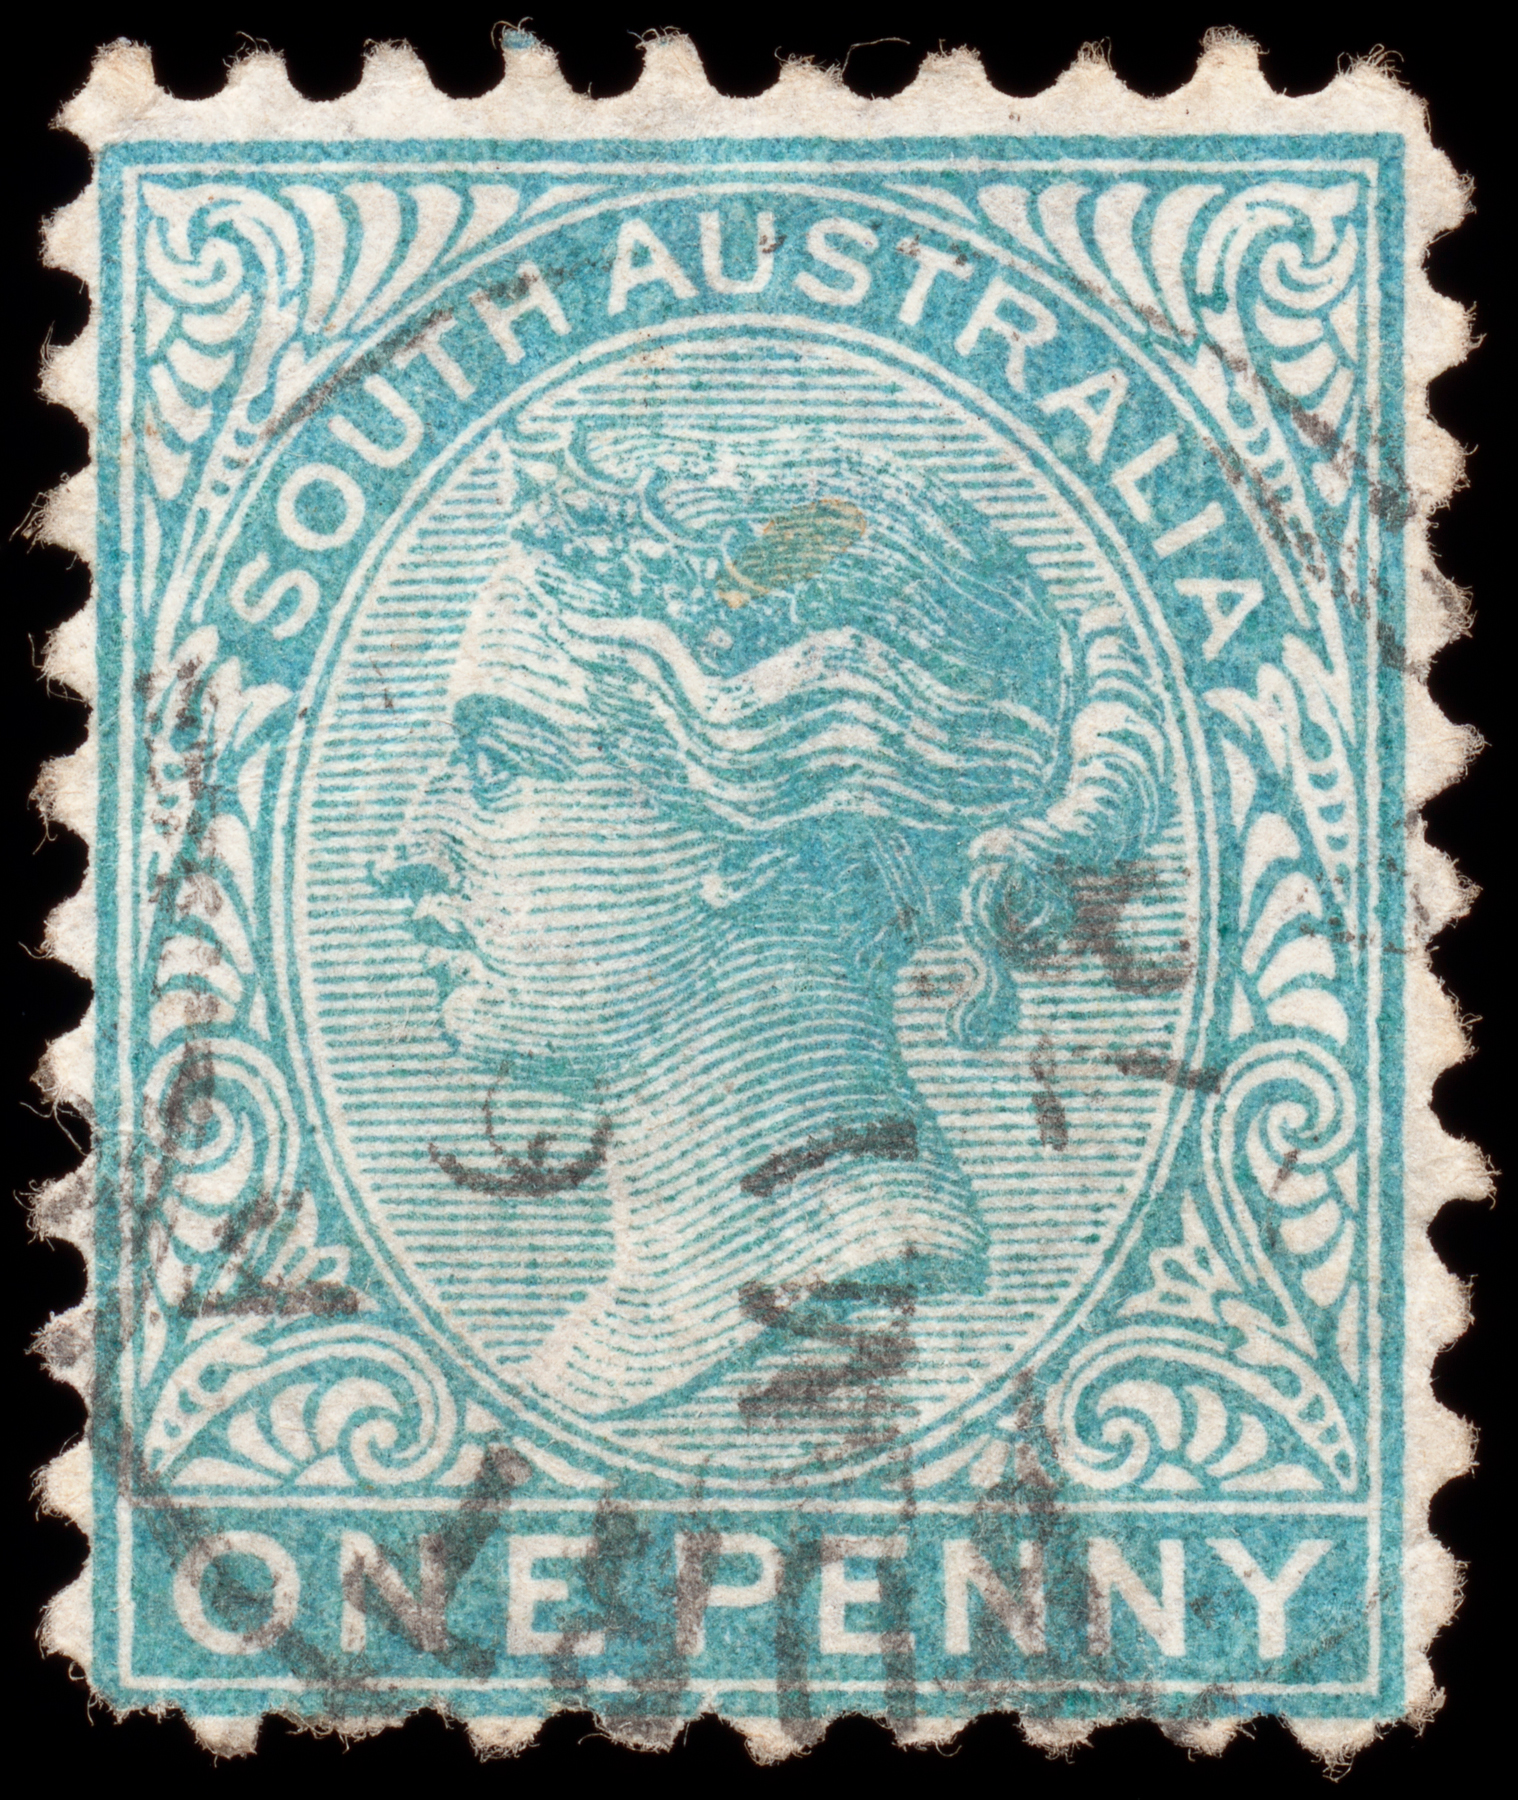 Cyan queen victoria stamp photo